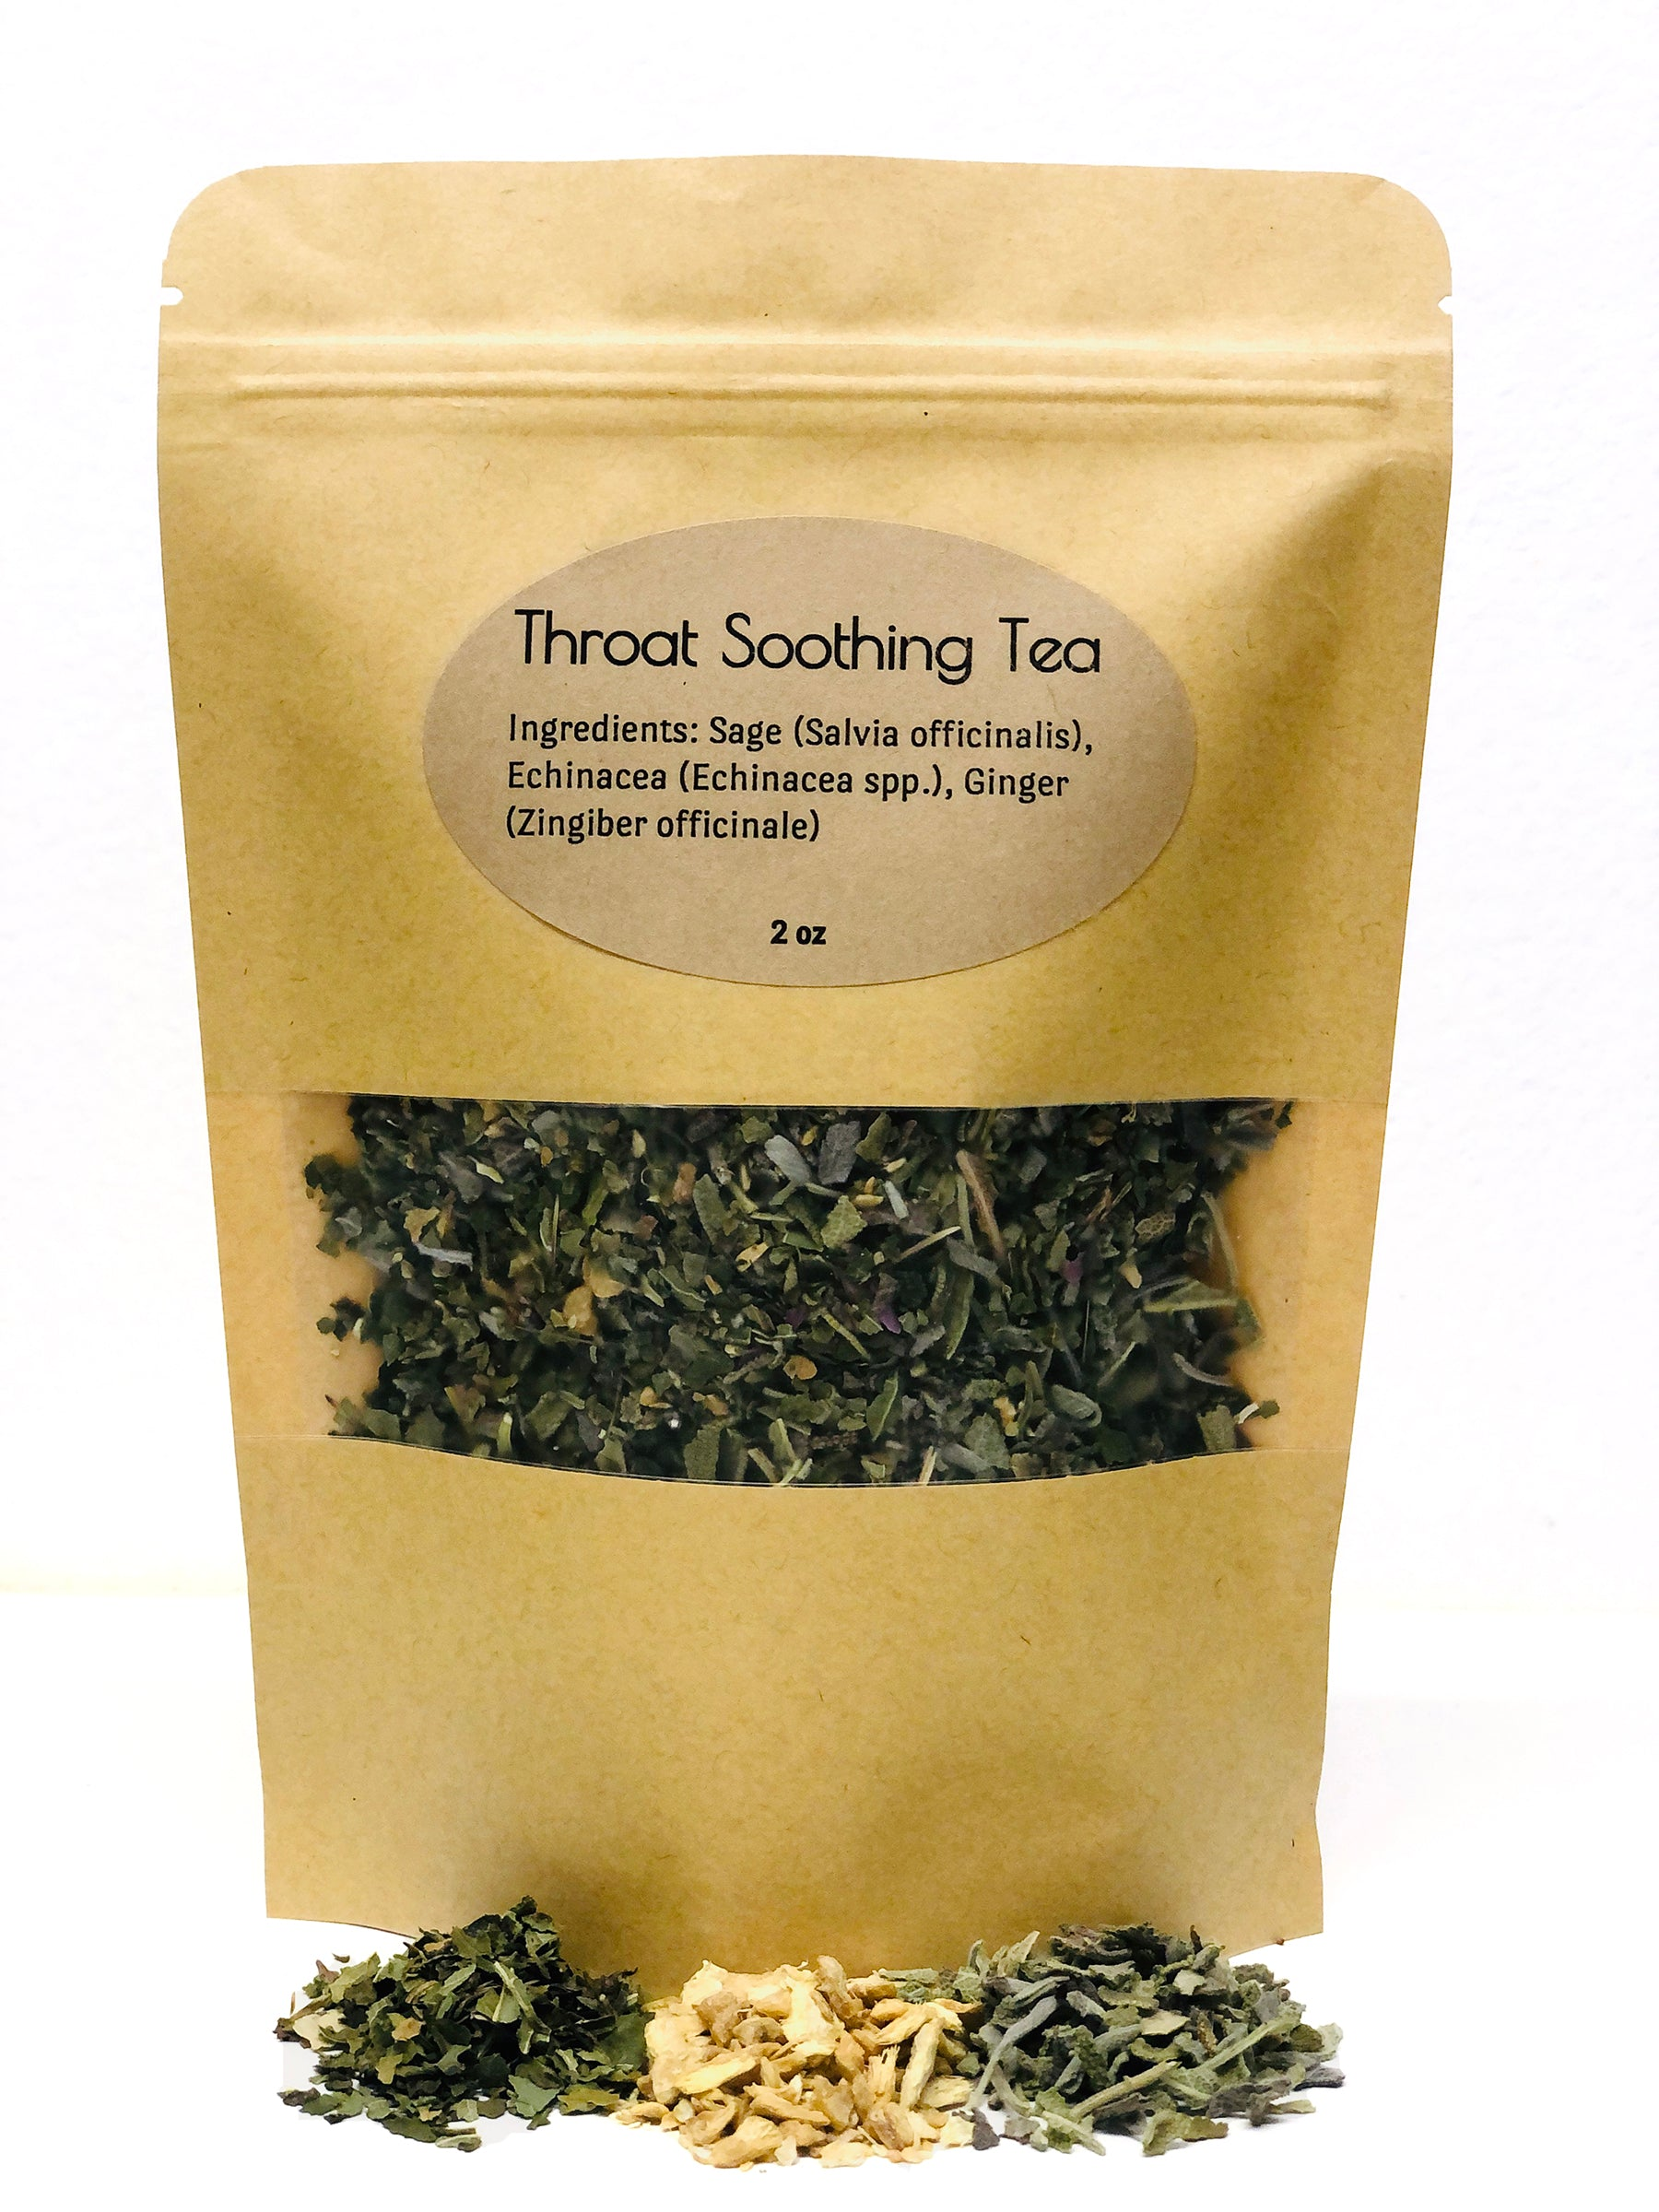 Throat Soothing Tea